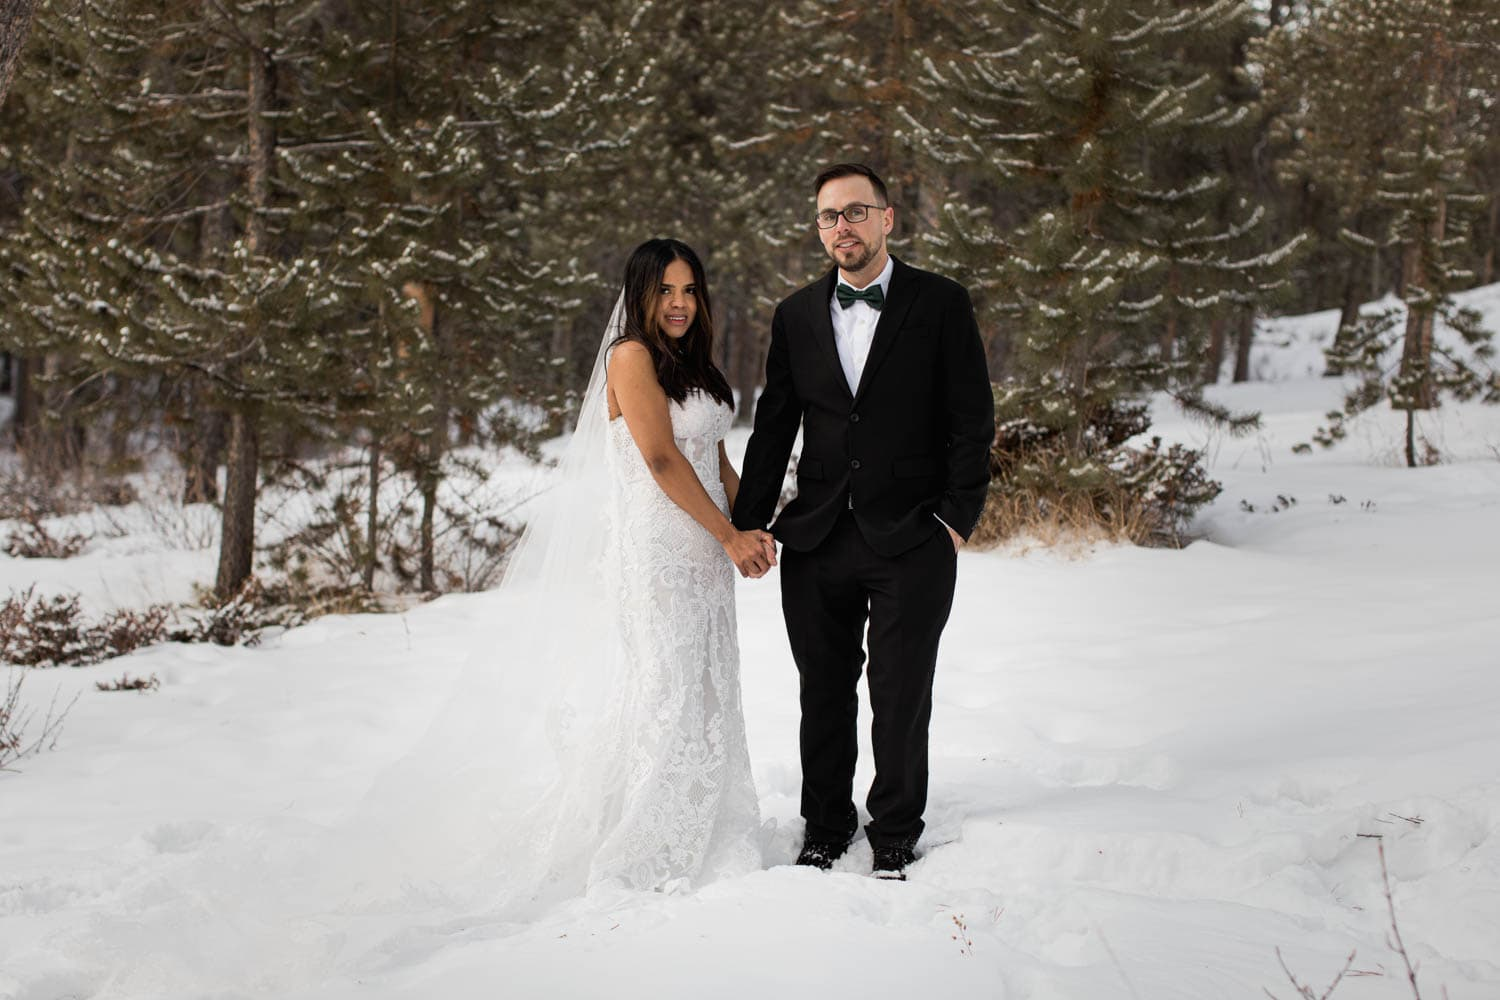 Forest Winter Elopement